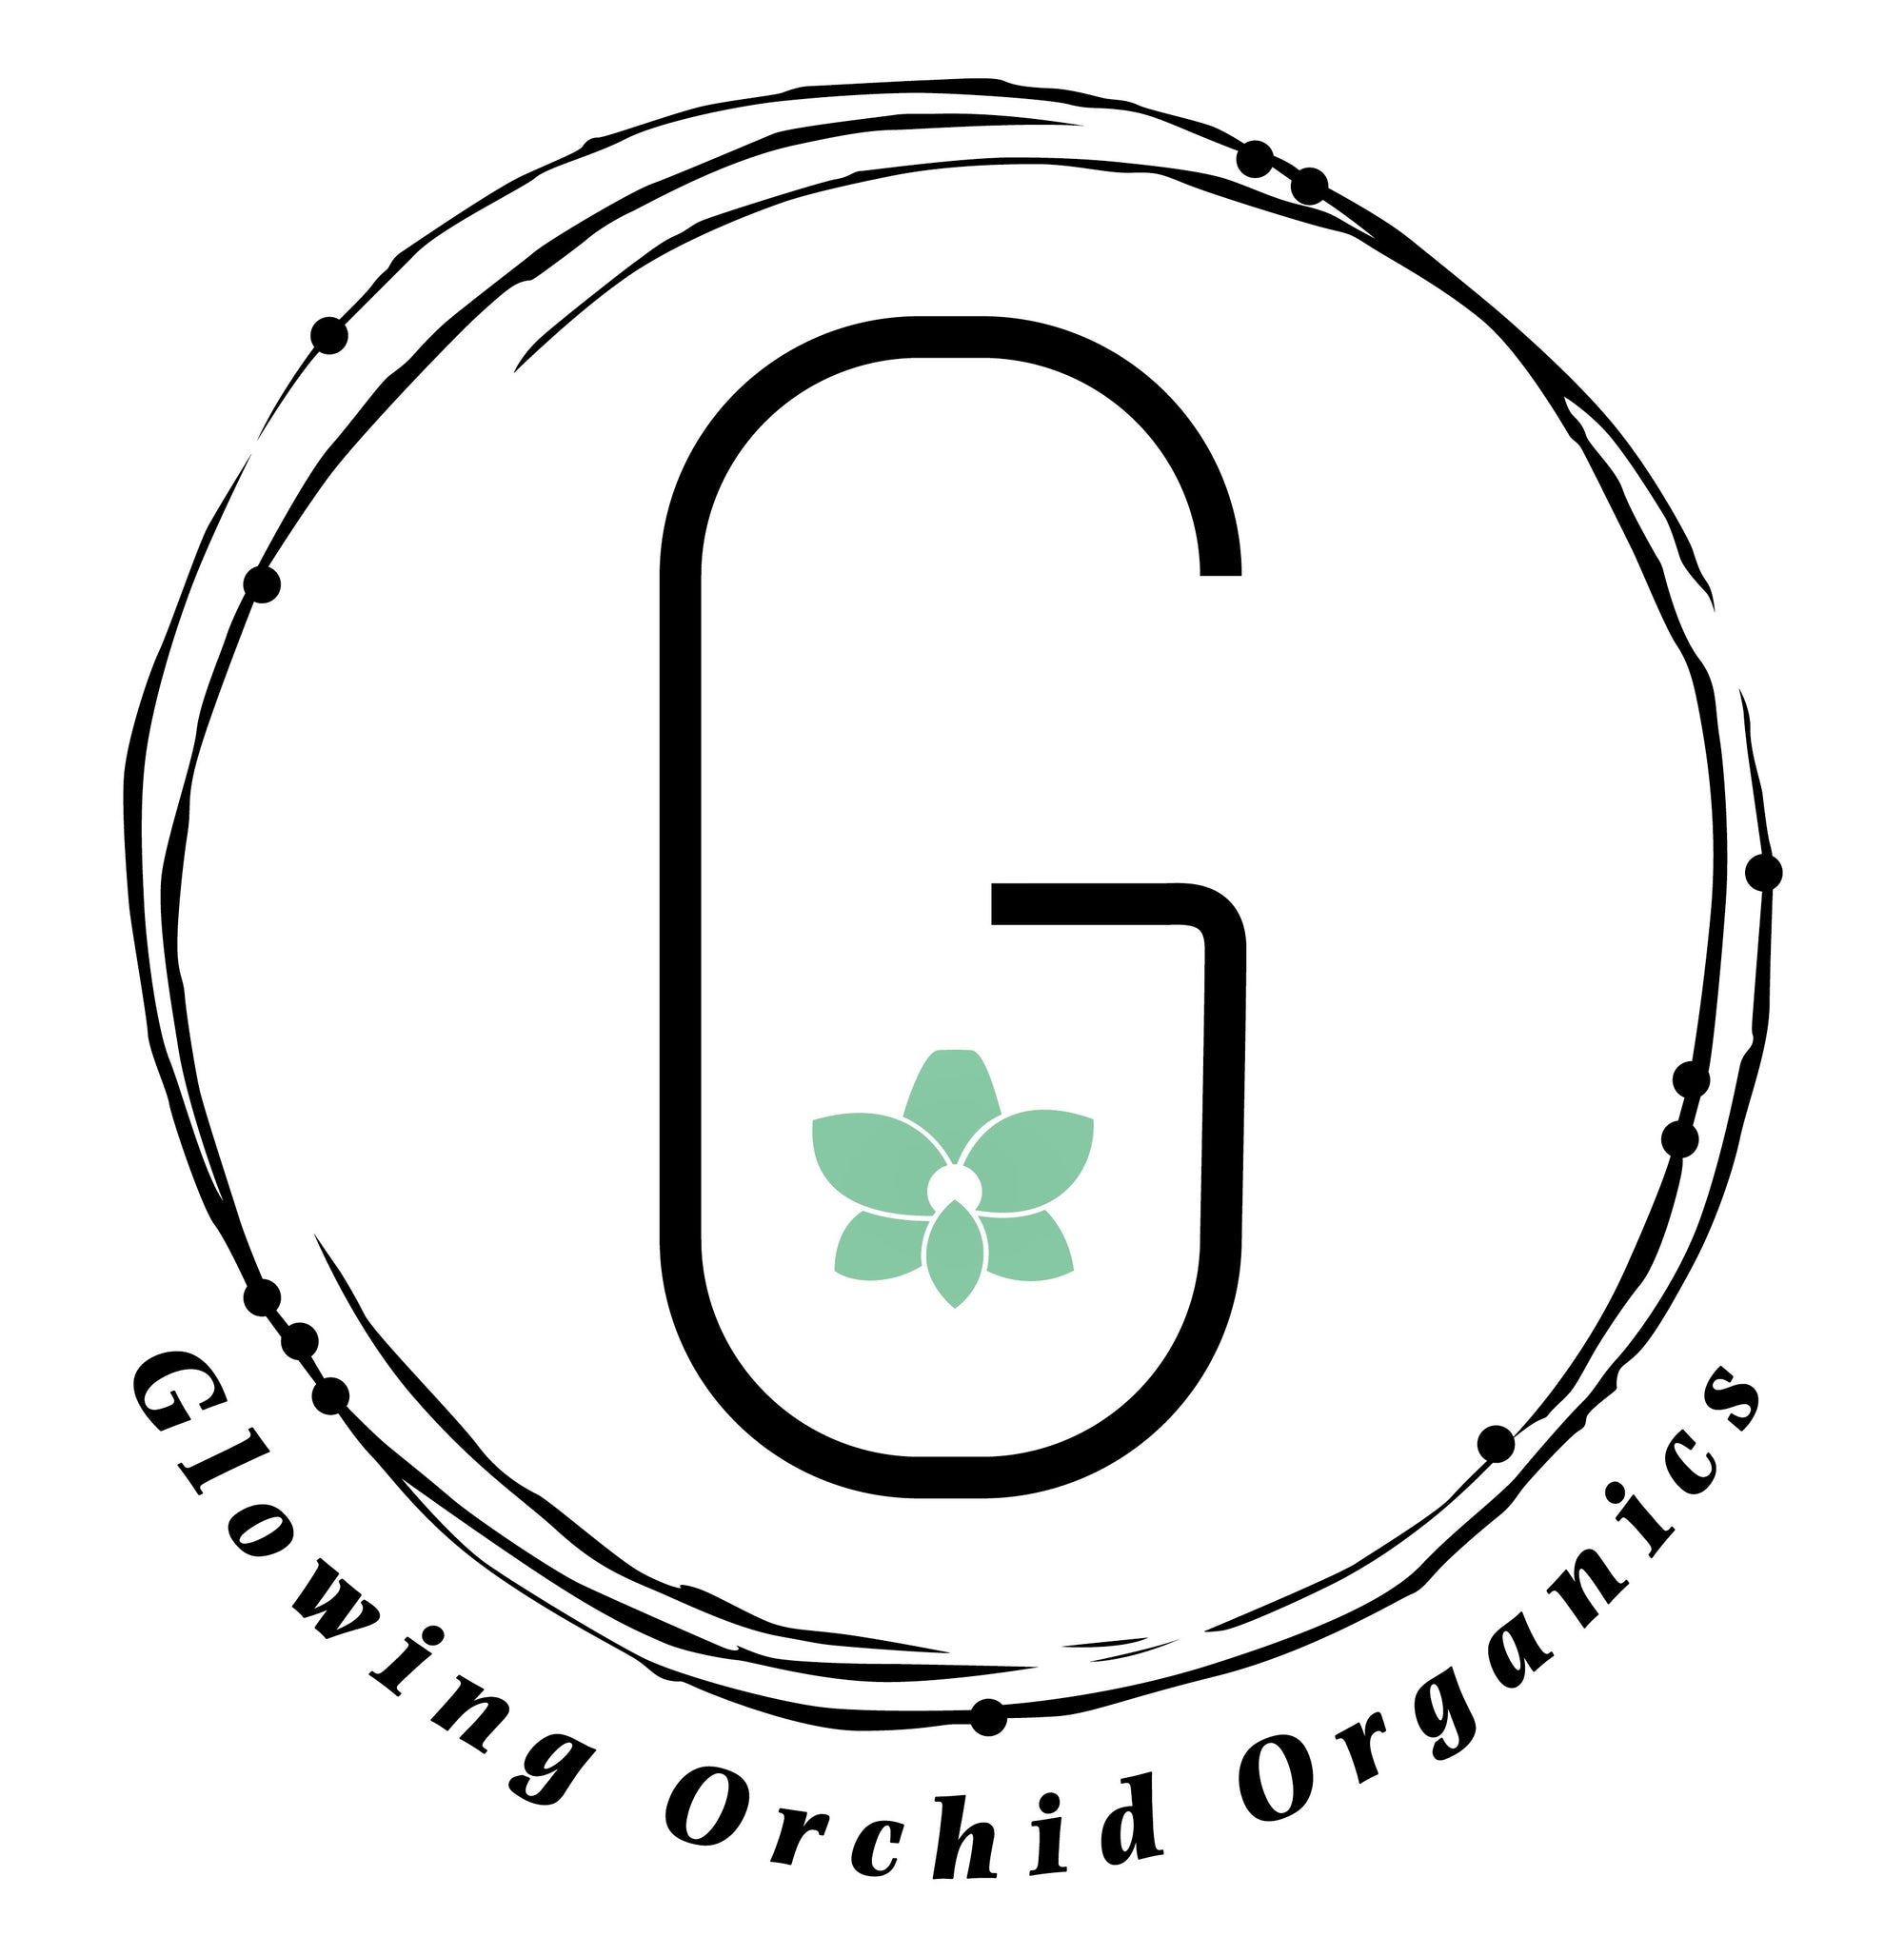 Glowing Orchid Organics Favicon Capital G with Teal Orchid in the center enveloped in circular artwork and cradled by company name 2020